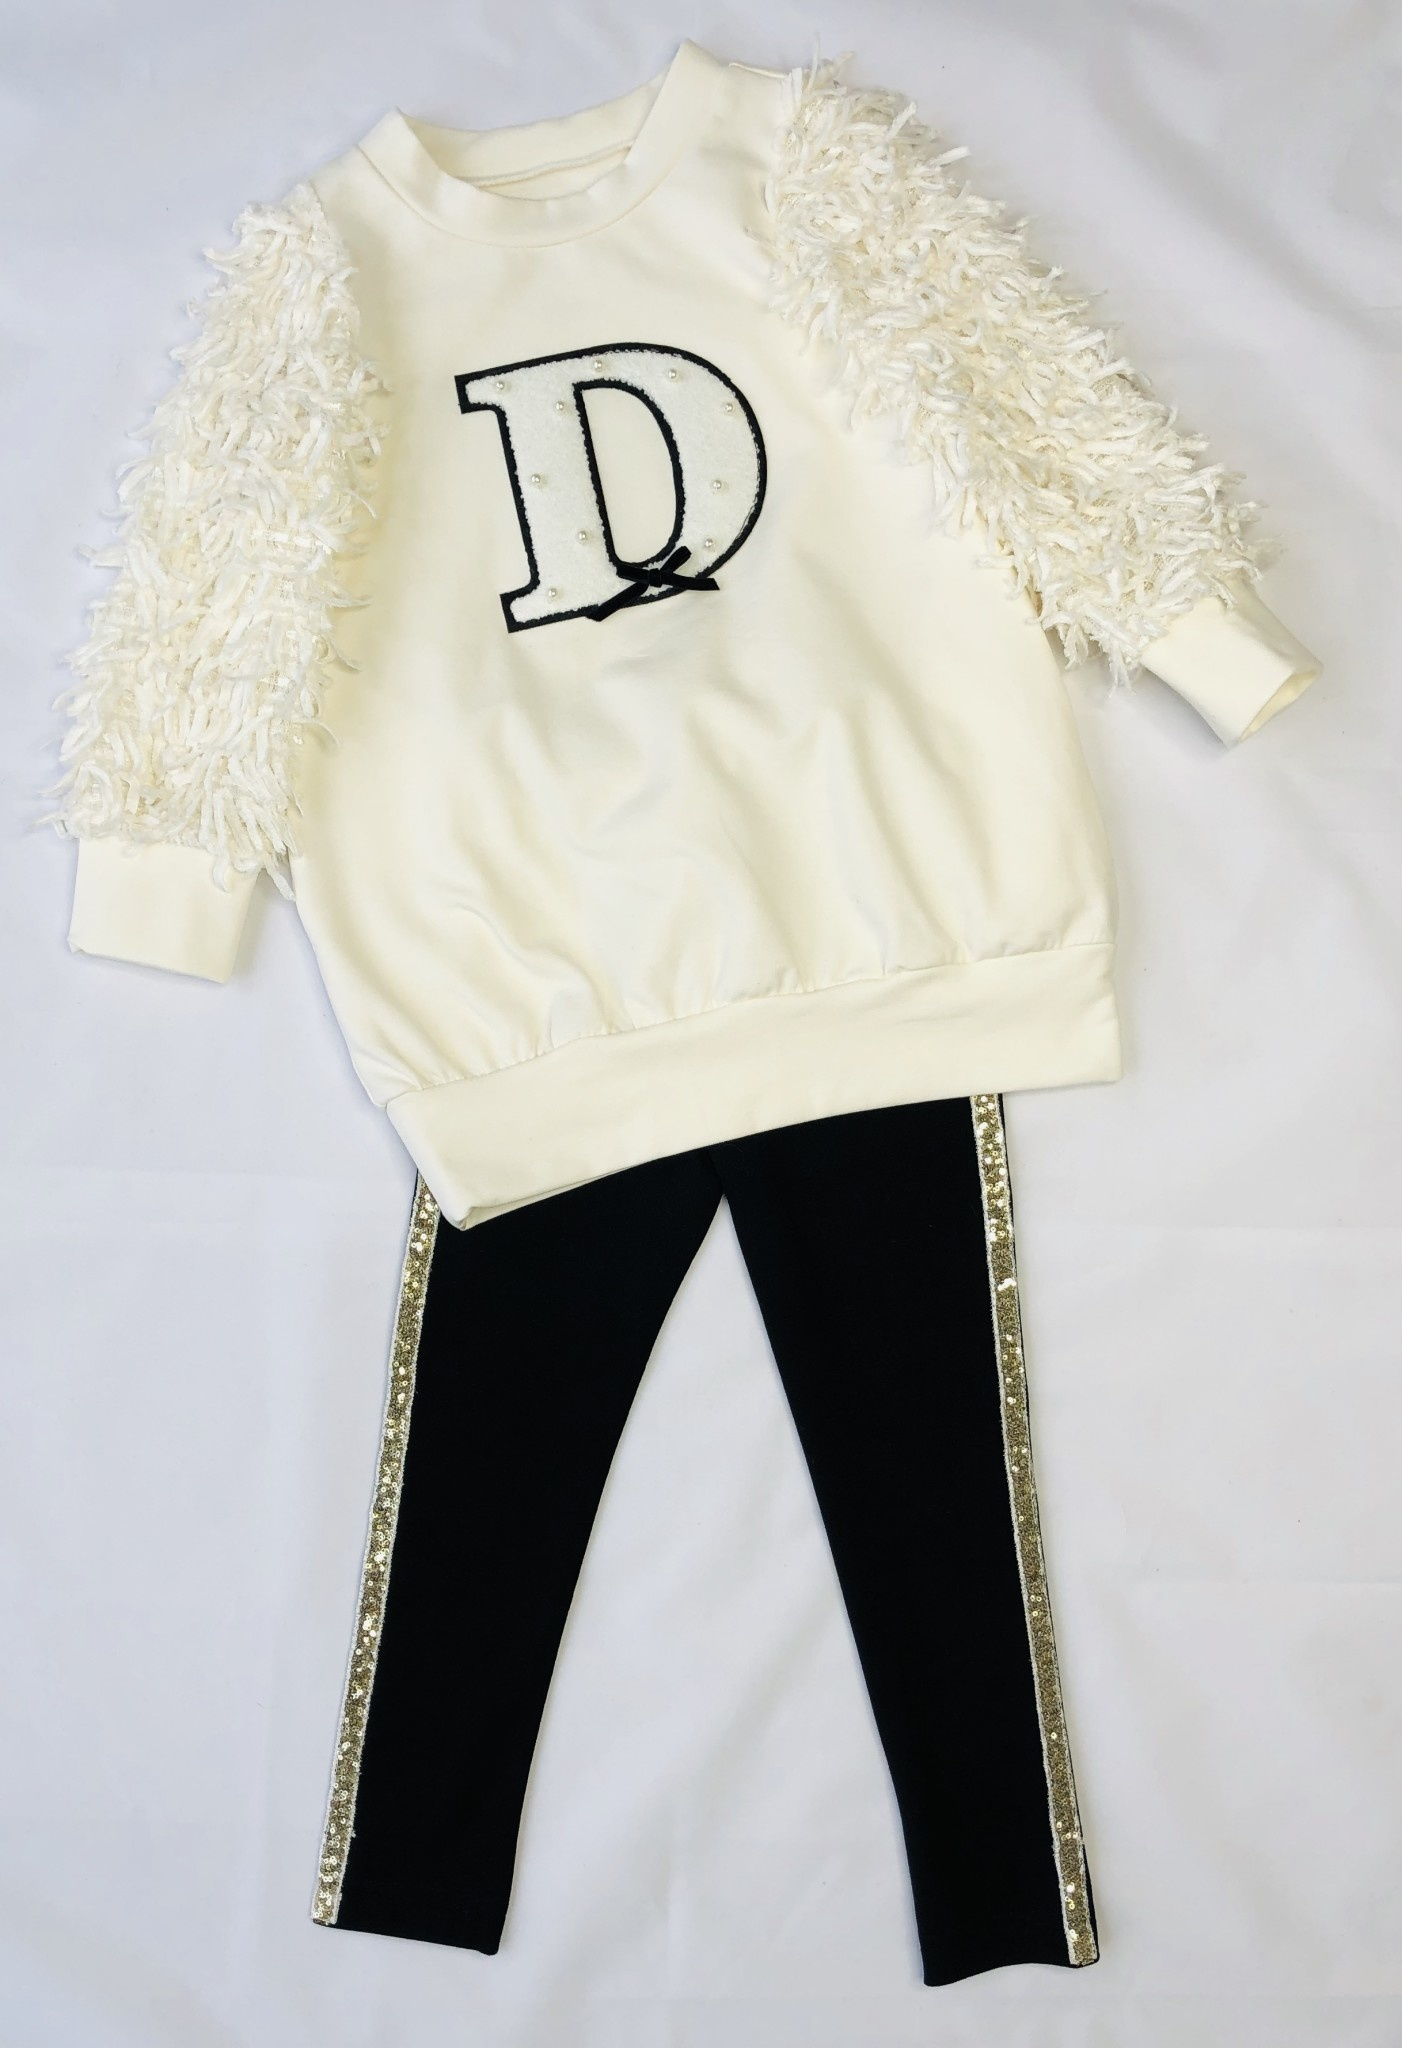 Daga Daga D Top & Leggings Set